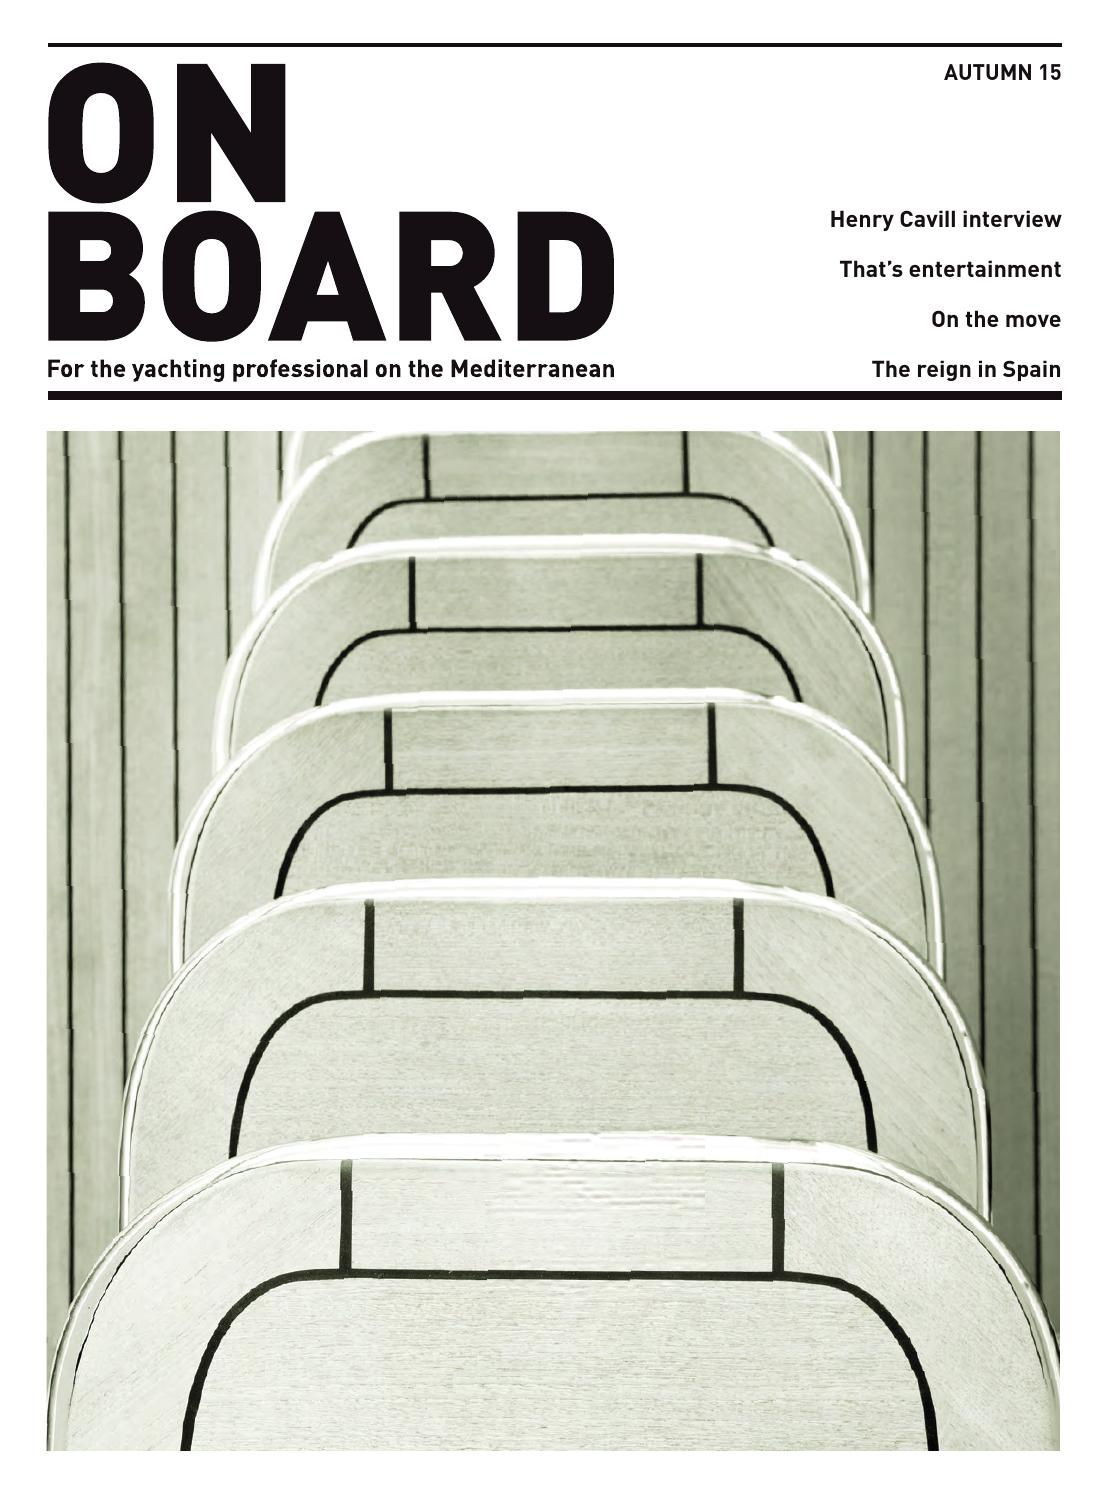 bf65e9a9a9 ONBOARD Magazine autumn 2015 by Plum Publications - issuu